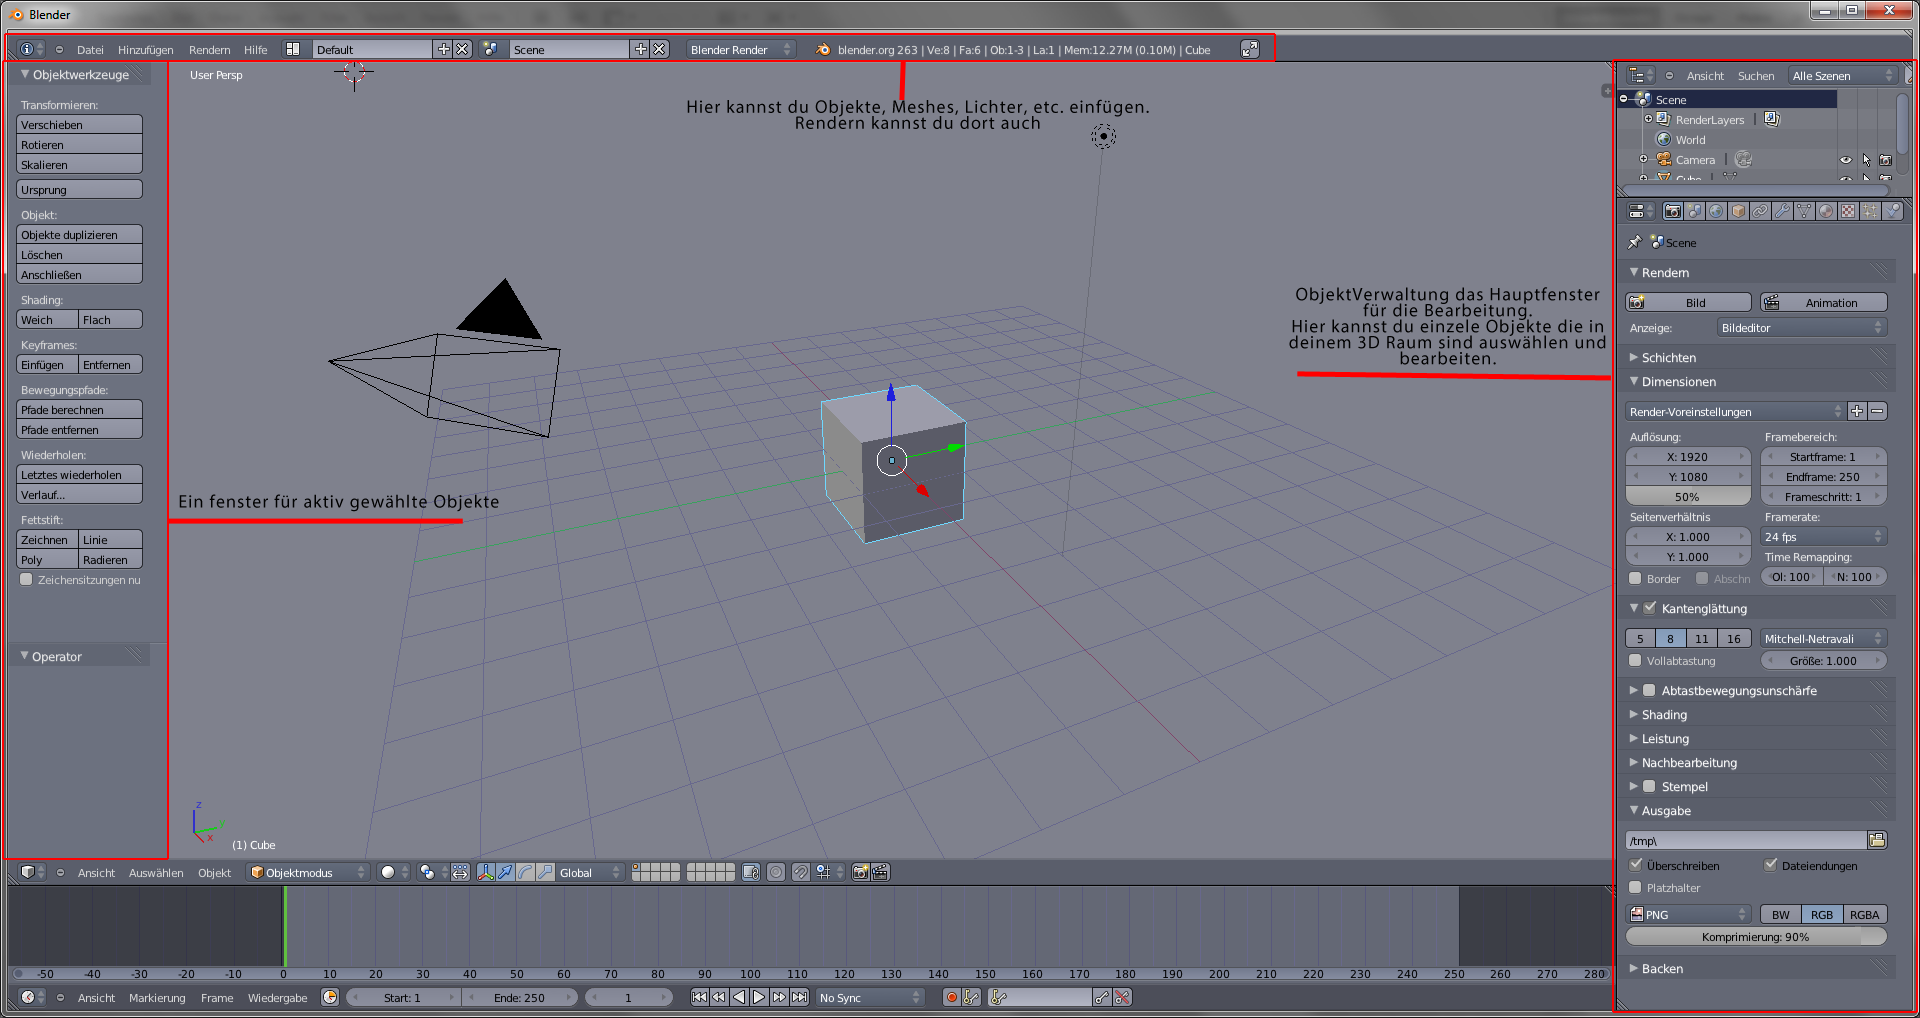 blender start bildschirm